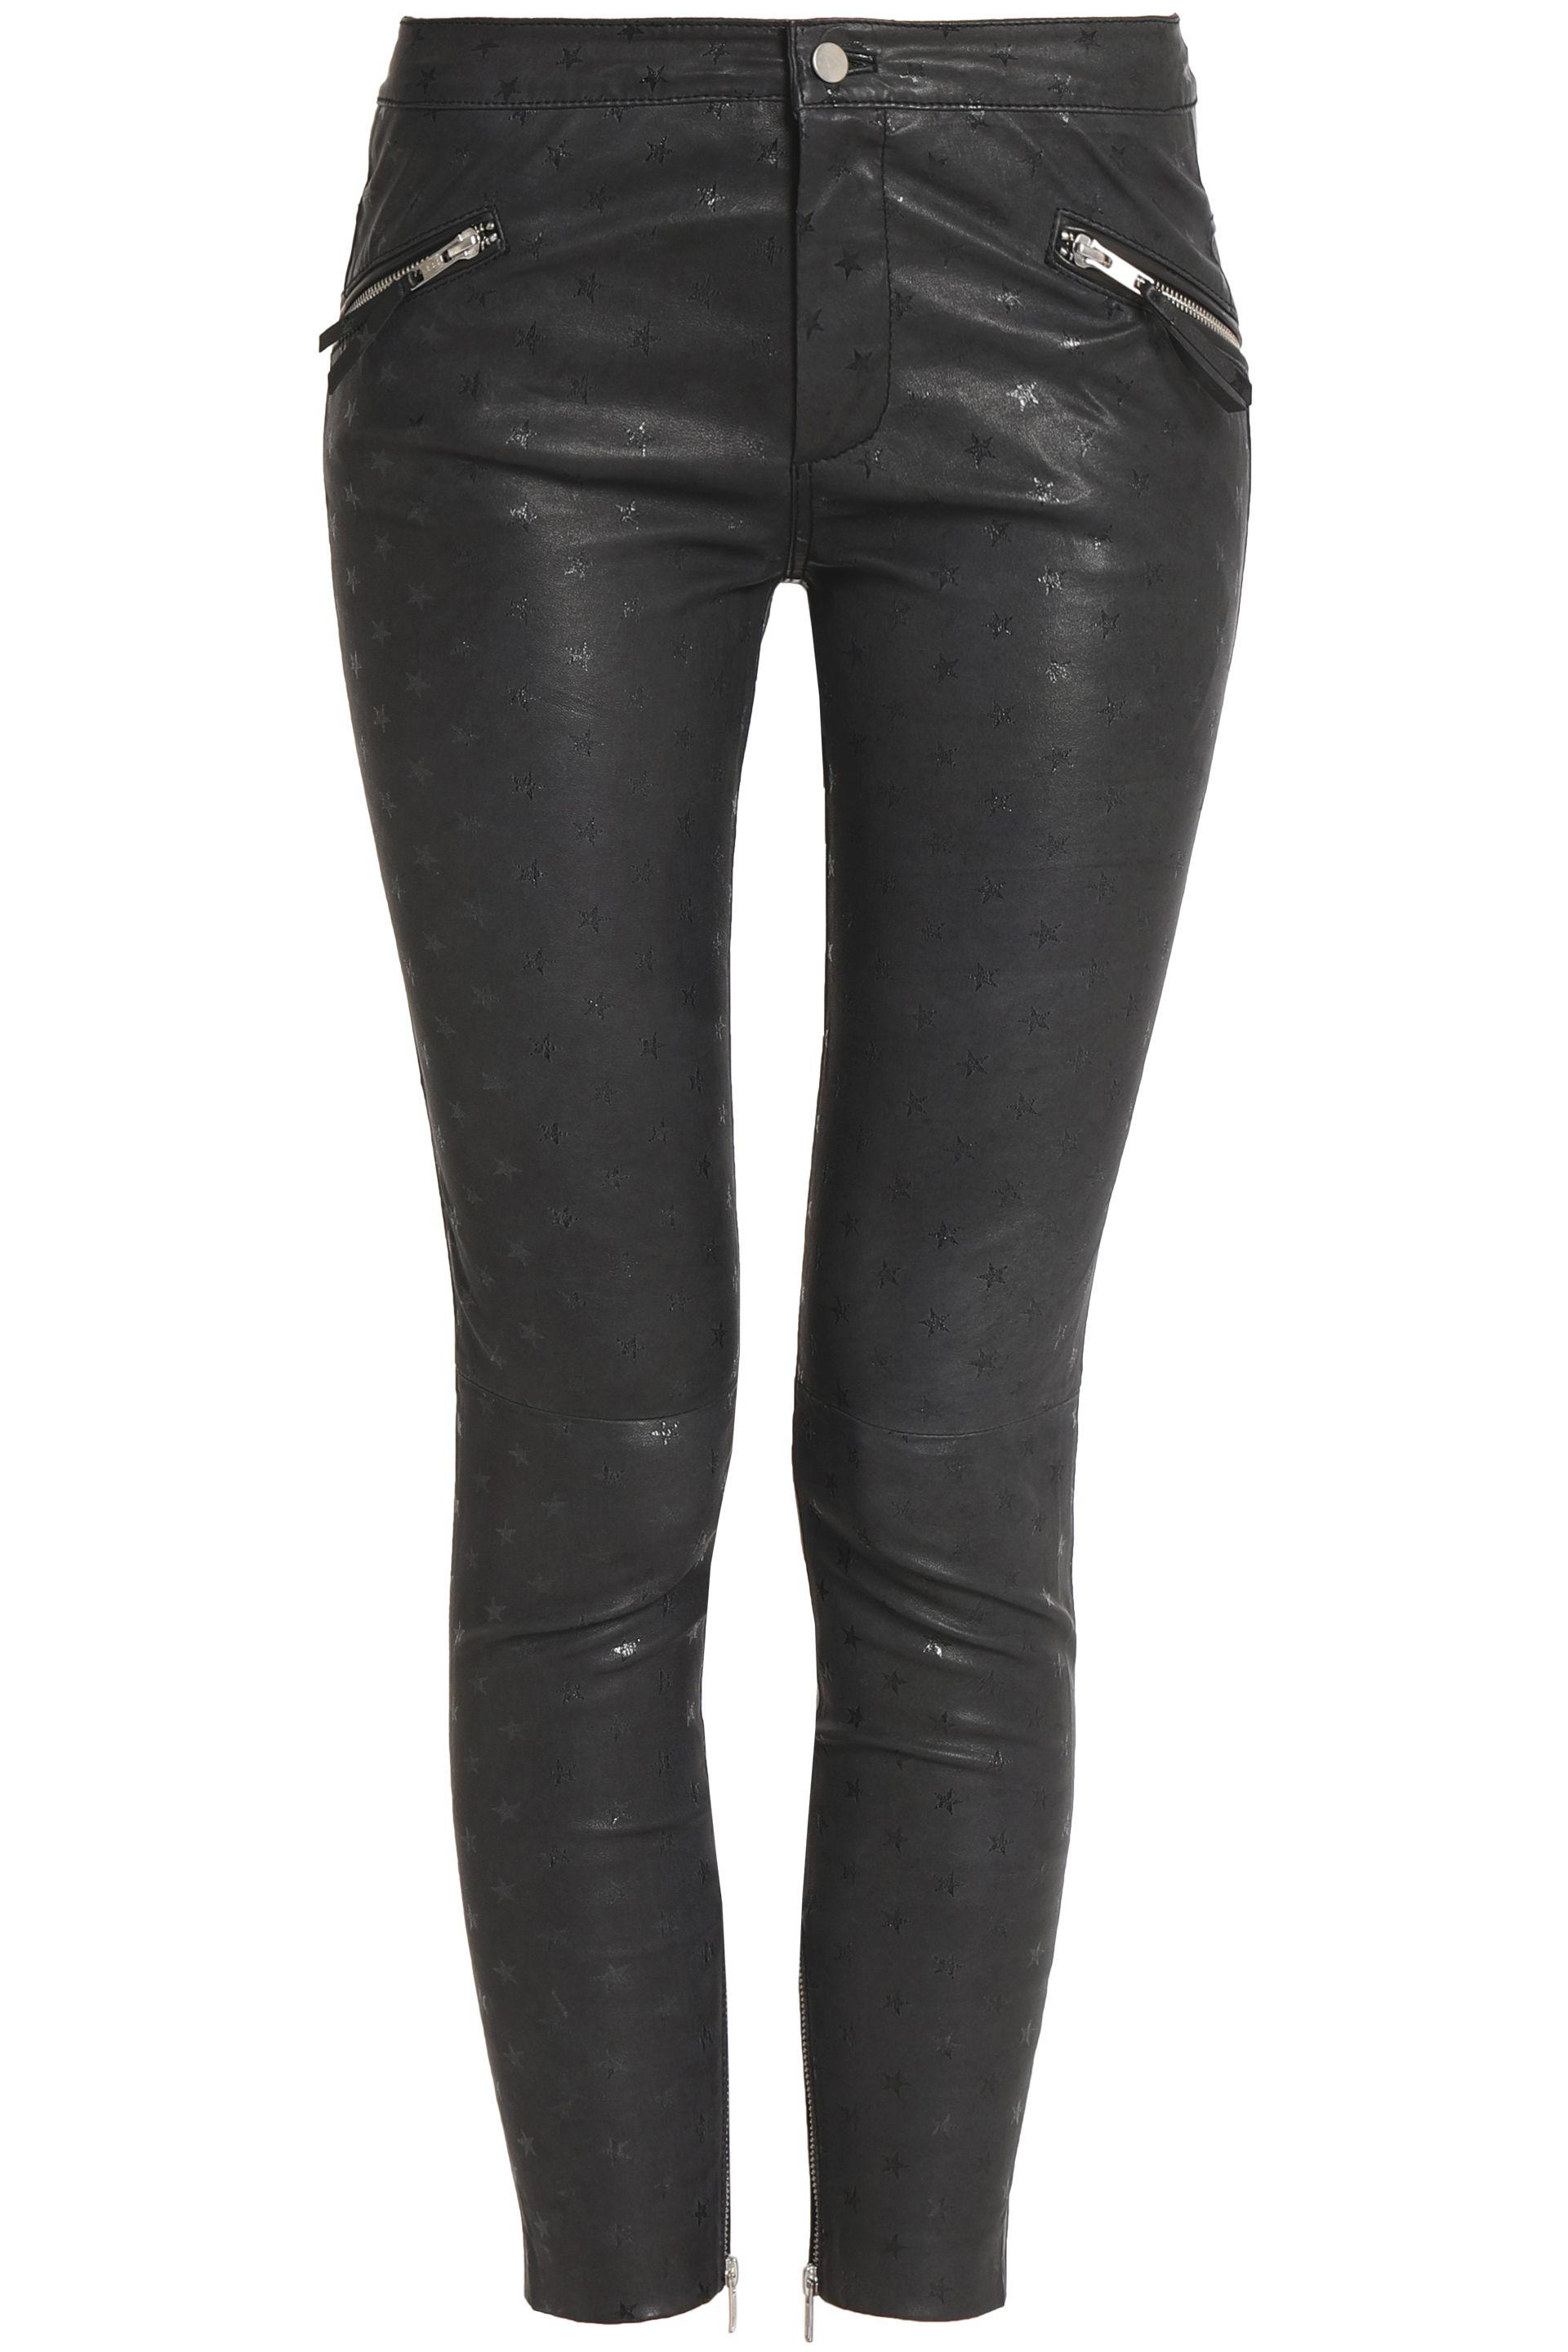 TROUSERS - 3/4-length trousers Zoe Karssen Supply Cheap Online Clearance Store Cheap Online Largest Supplier in2eFgBMt